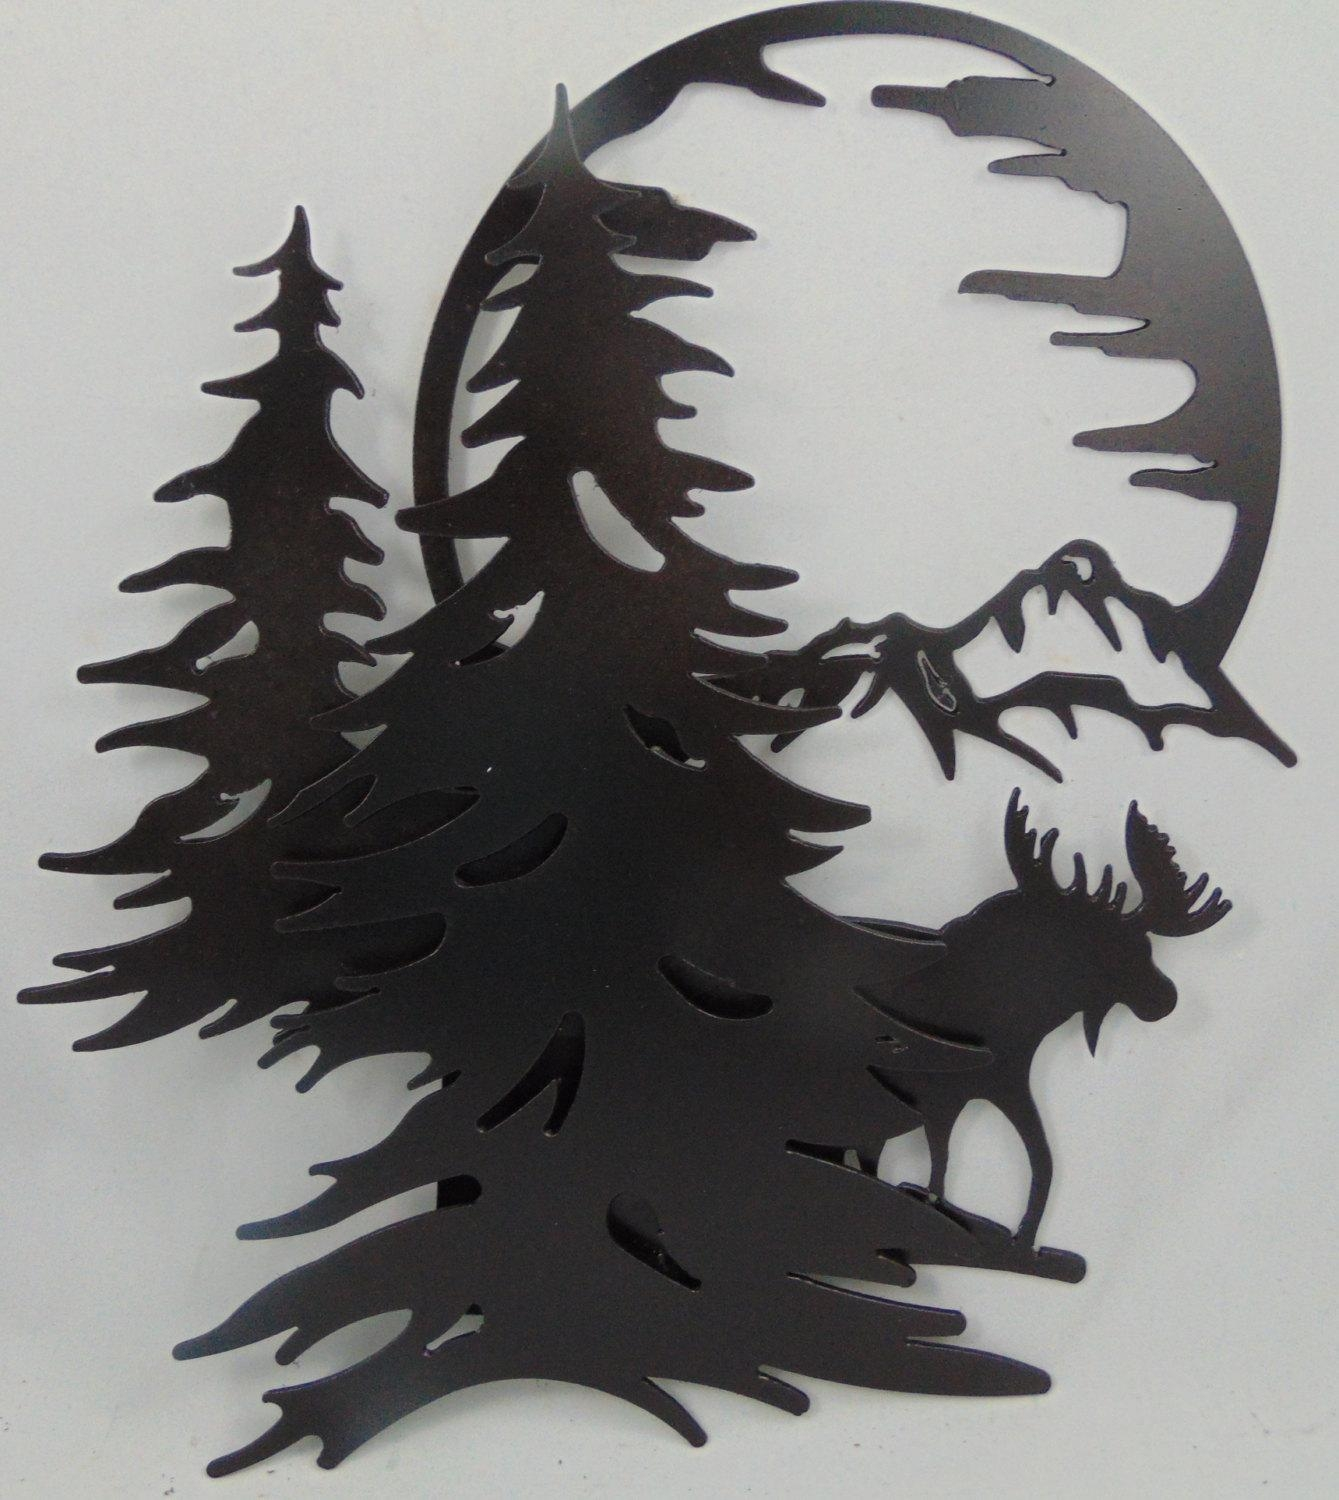 3-D Metal Moose Mountains Trees Moon Scene Wall Hanging / intended for Mountain Scene Metal Wall Art